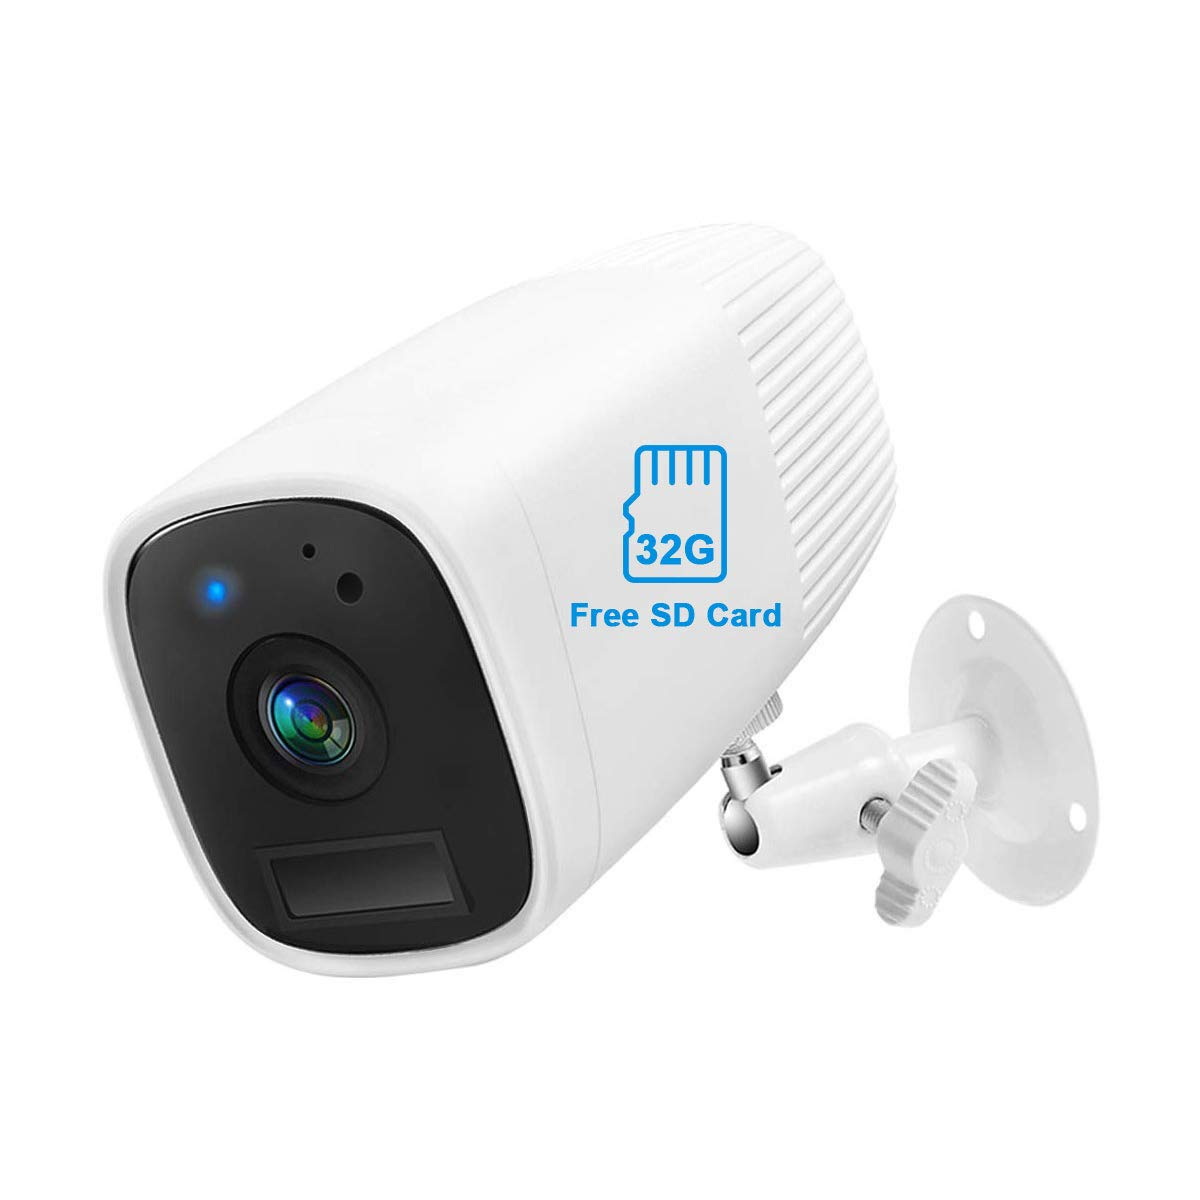 Wireless Rechargeable Battery Security Camera 1080P Abowone Wireless WiFi IP Camera IP66 Waterproof for Outdoor/Indoor 12000mAh Built-in Battery Two-Way Audio PIR Motion Detection HD Night Vision